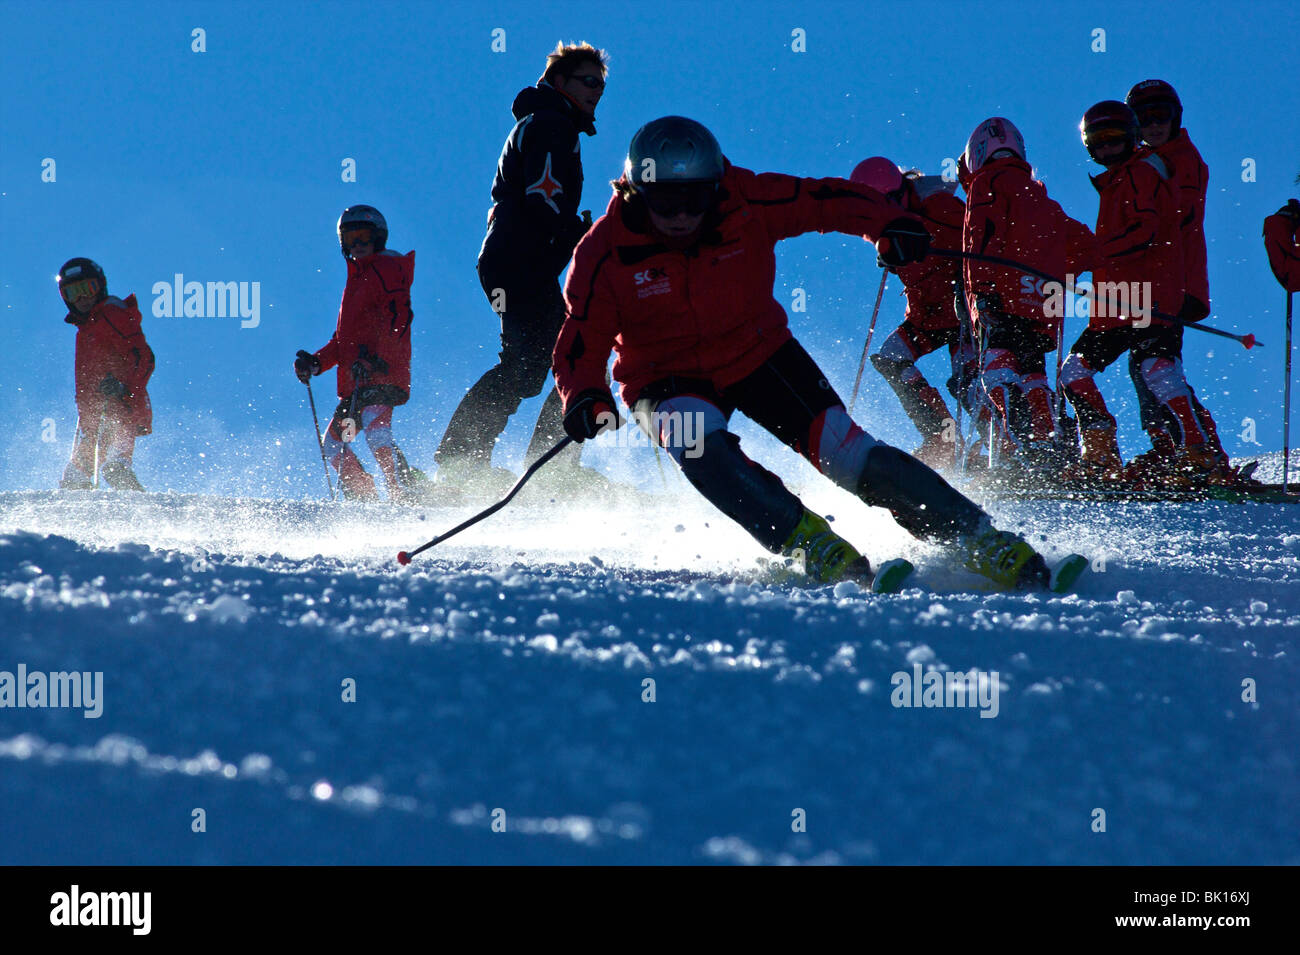 Sierra Nevada ski match - Stock Image